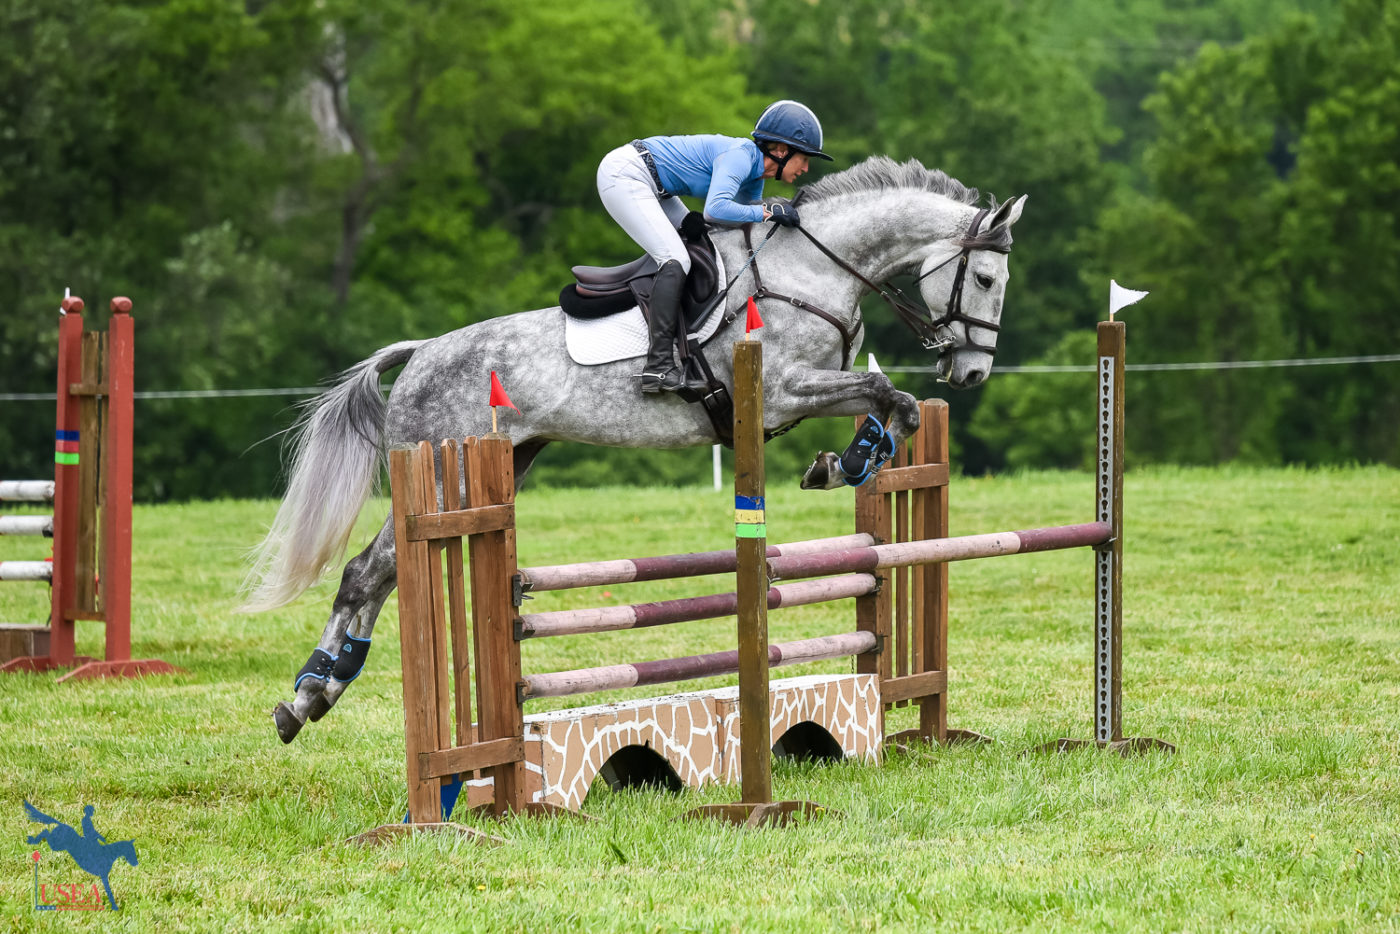 As part of the event's one-day format, riders completed their show jumping rounds and went immediately to cross-country. USEA/Jessica Duffy Photo.